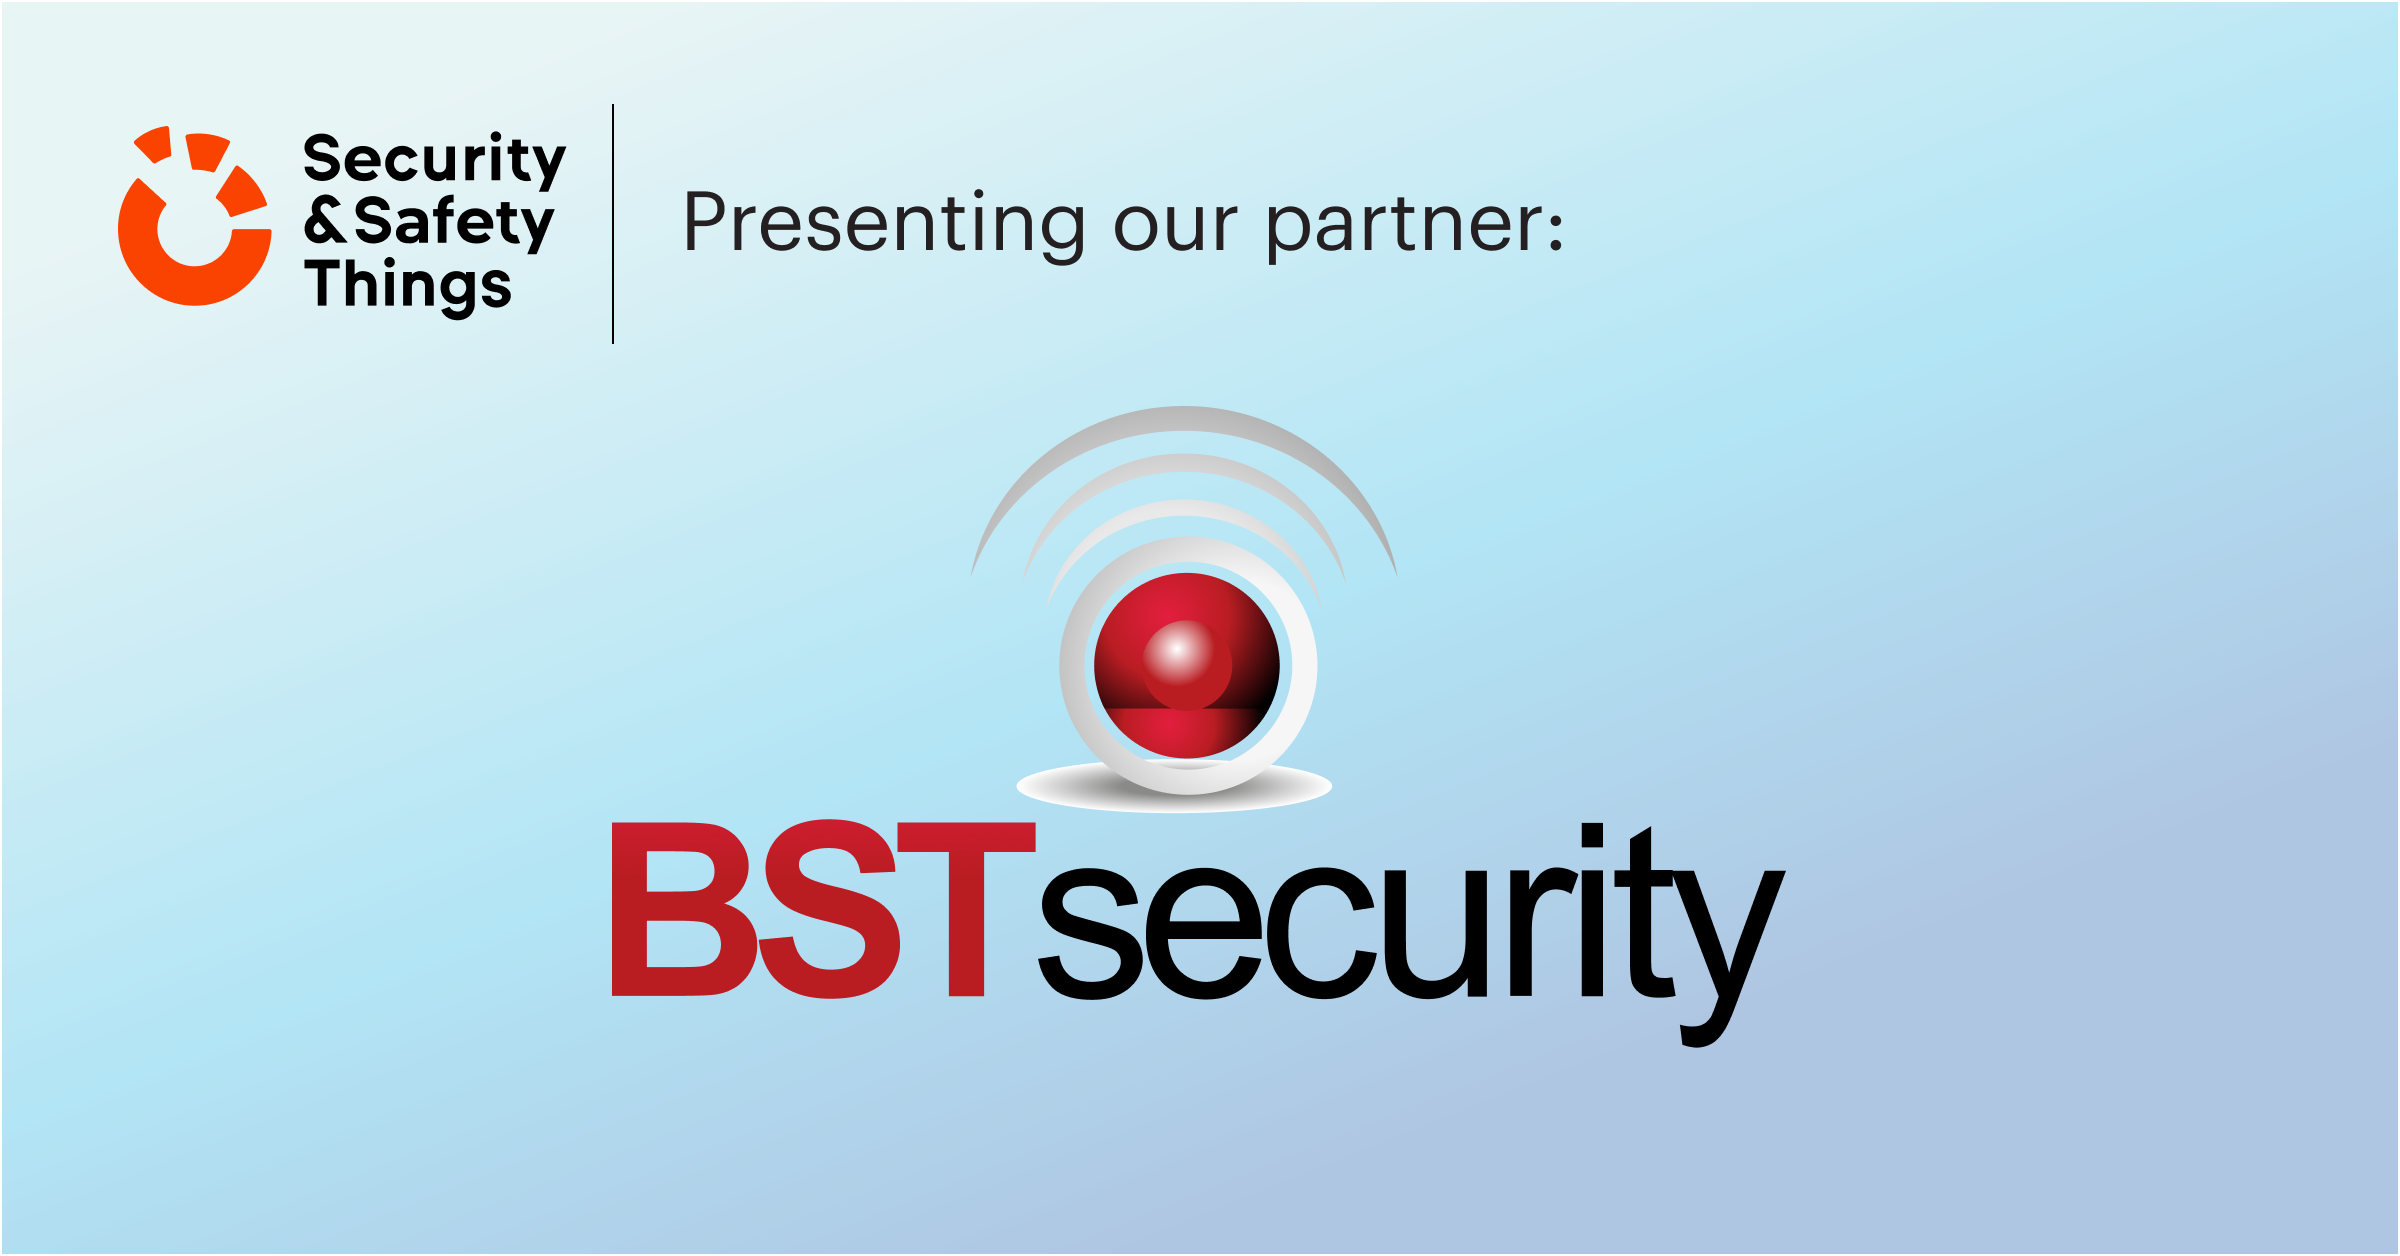 BSTsecurity Security and Safety Things